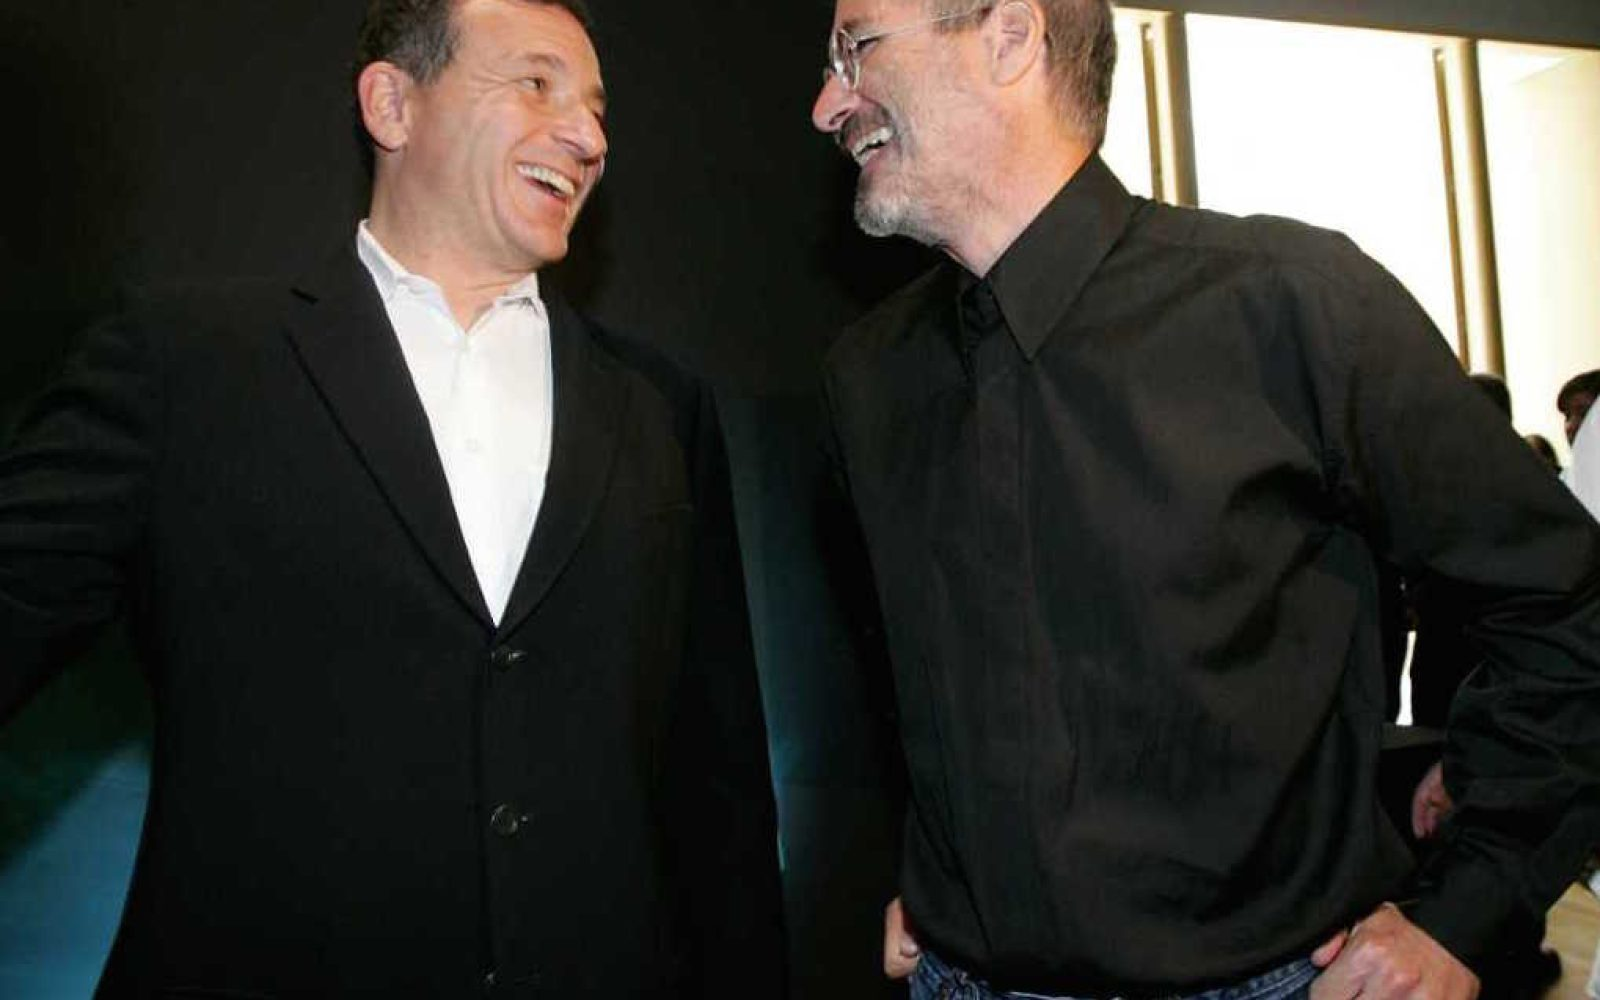 Disney CEO Bob Iger reflects on working with Steve Jobs: the